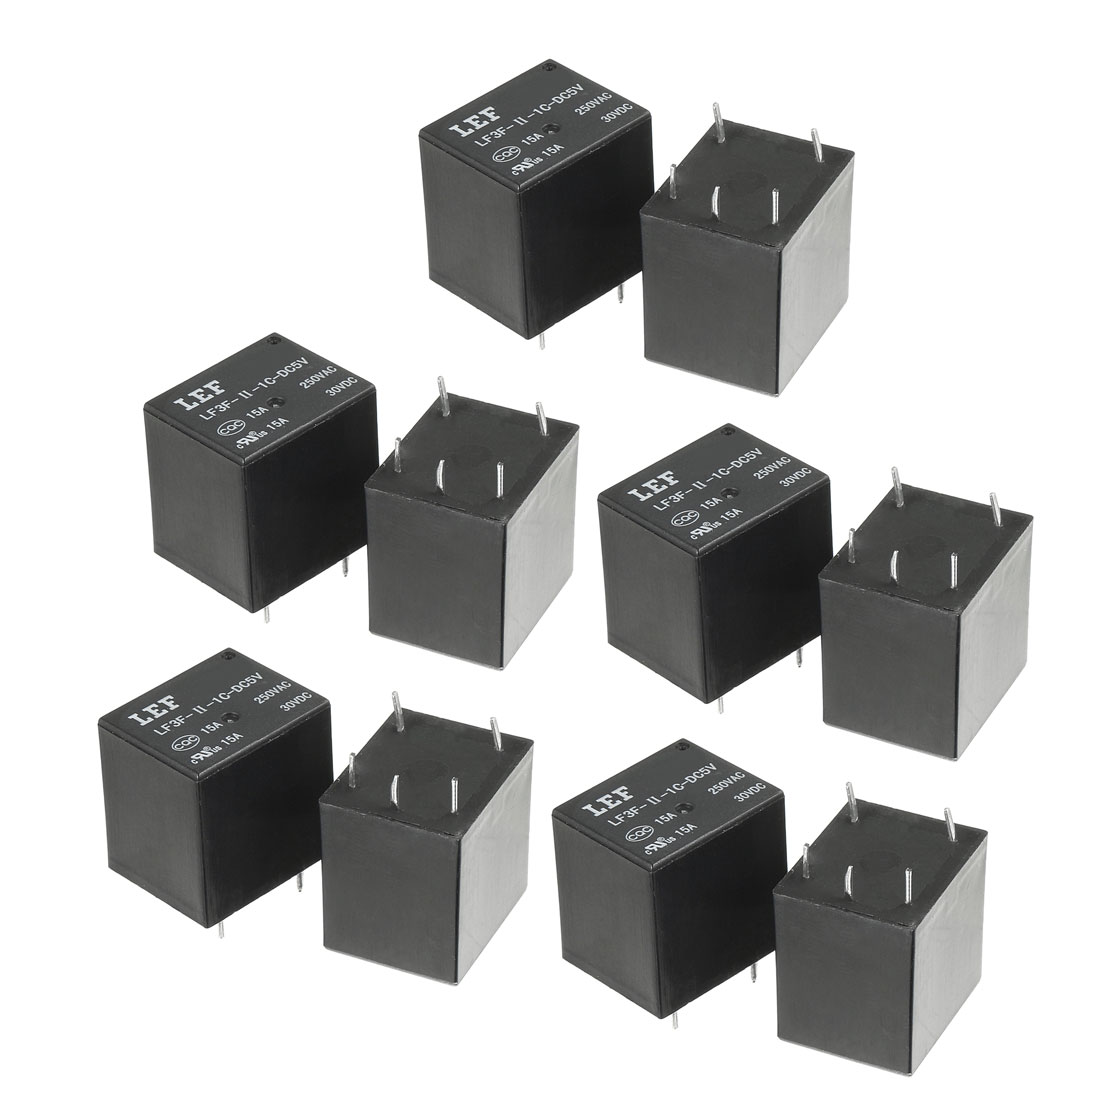 10Pcs DC 5V Coil SPDT 1NO+1NC 5P Power Electromagnetic Relay DIN Rail Mounted